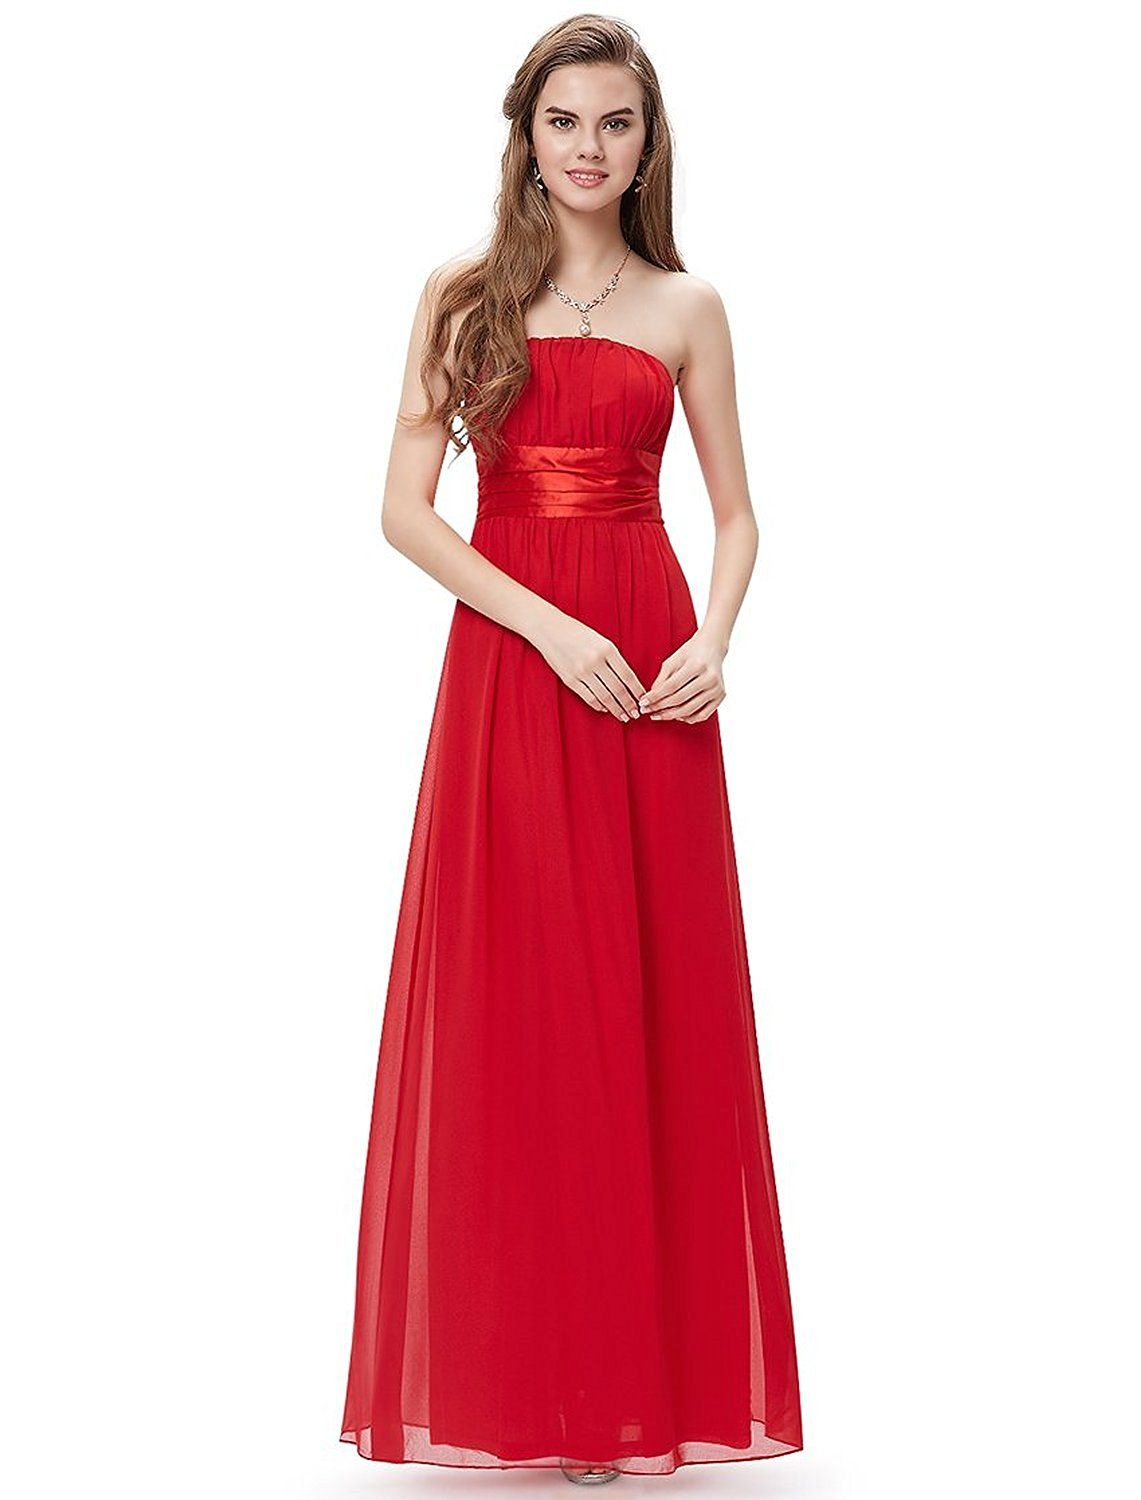 Simpledress simple strapless empire waist bow sash show toes evening